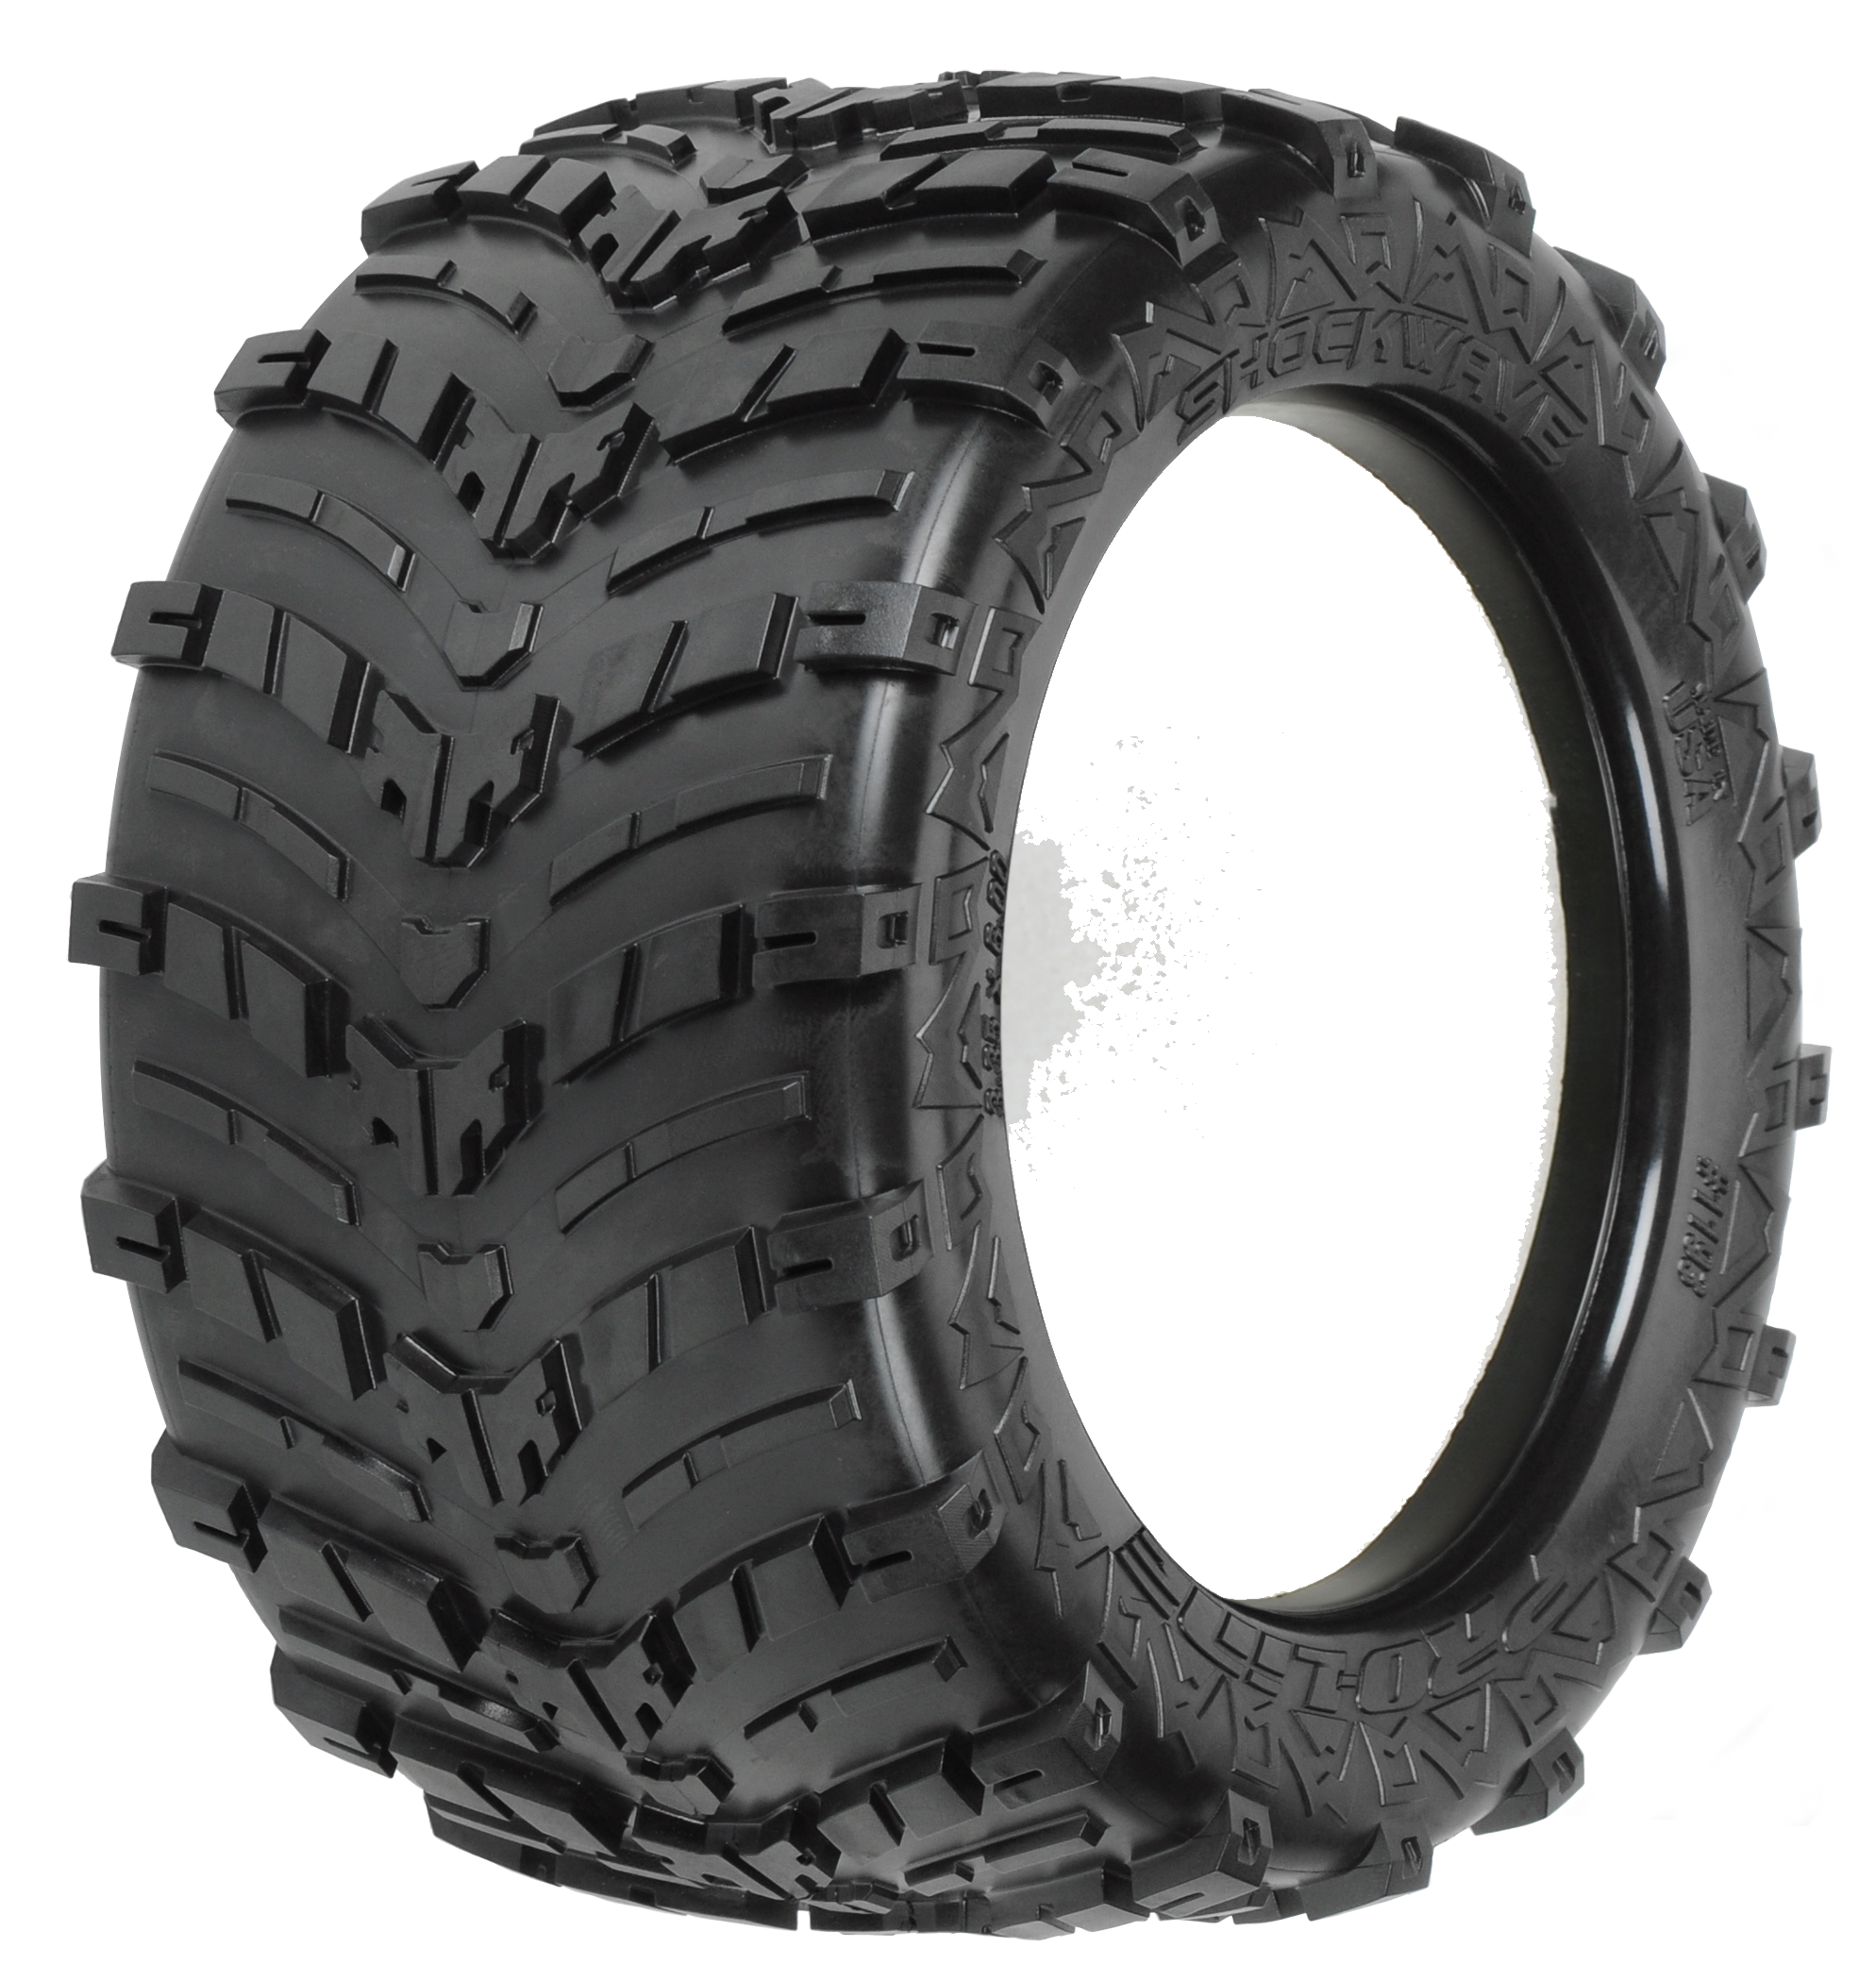 Tires icon png web. Wheel clipart tire jeep